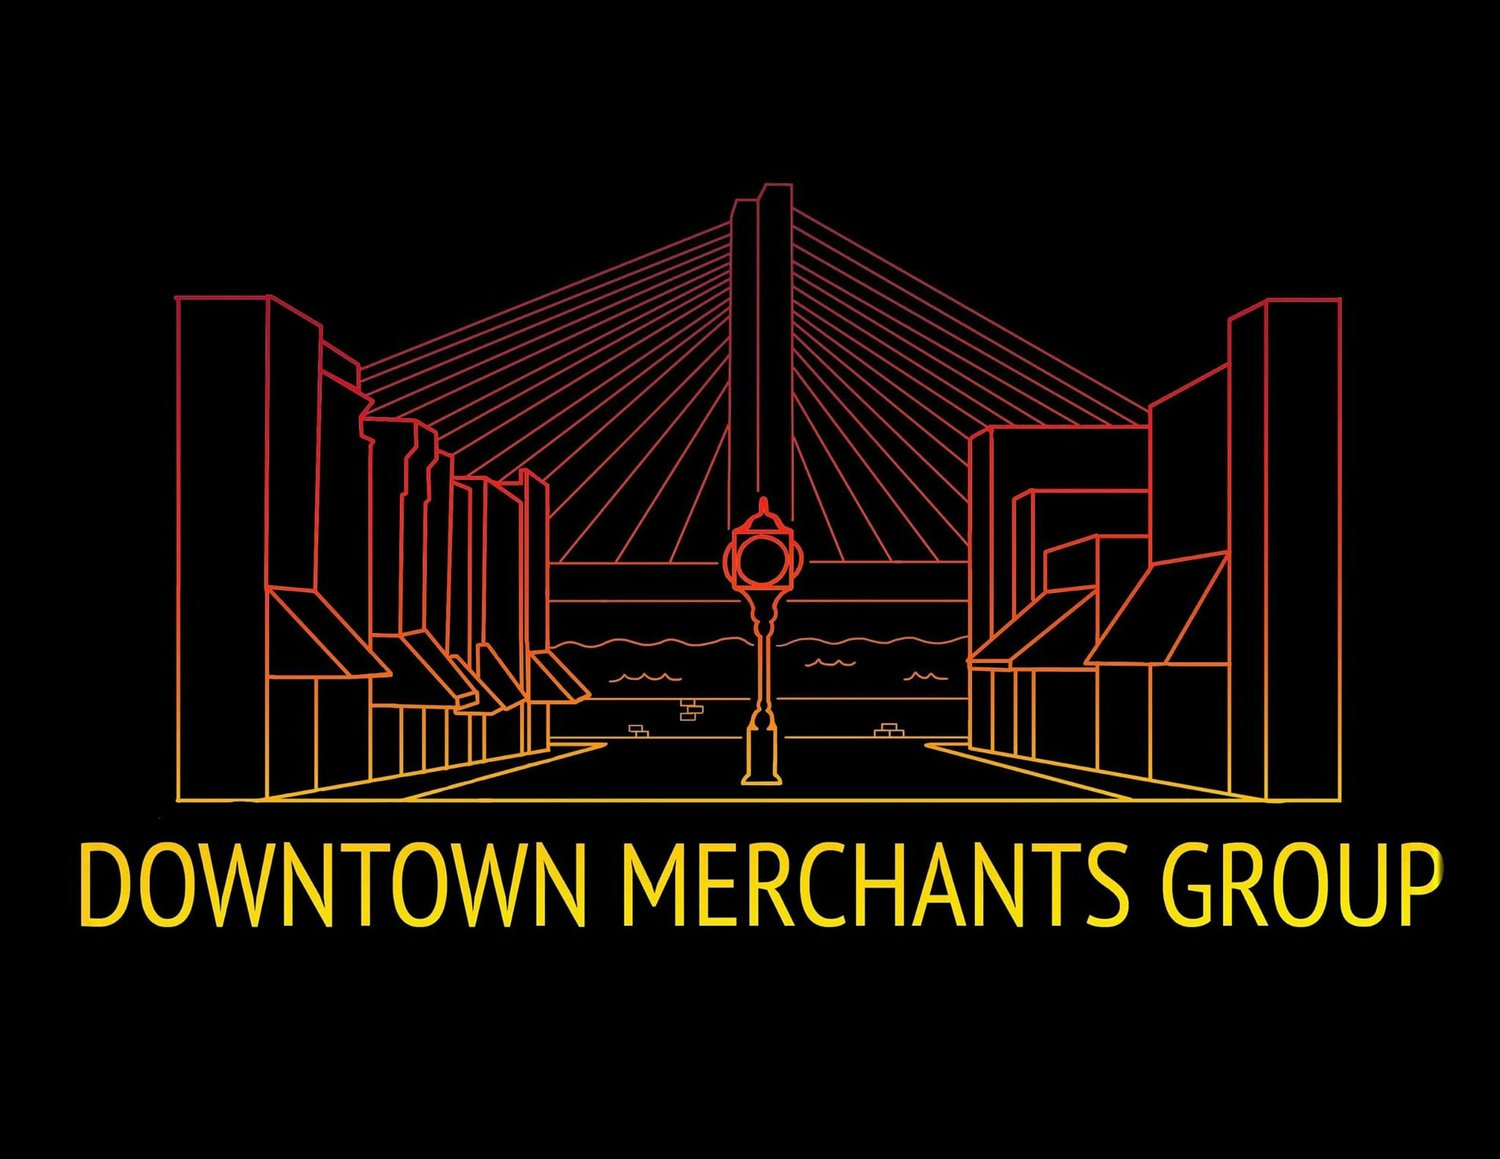 Downtown Merchants Group - Cape Girardeau